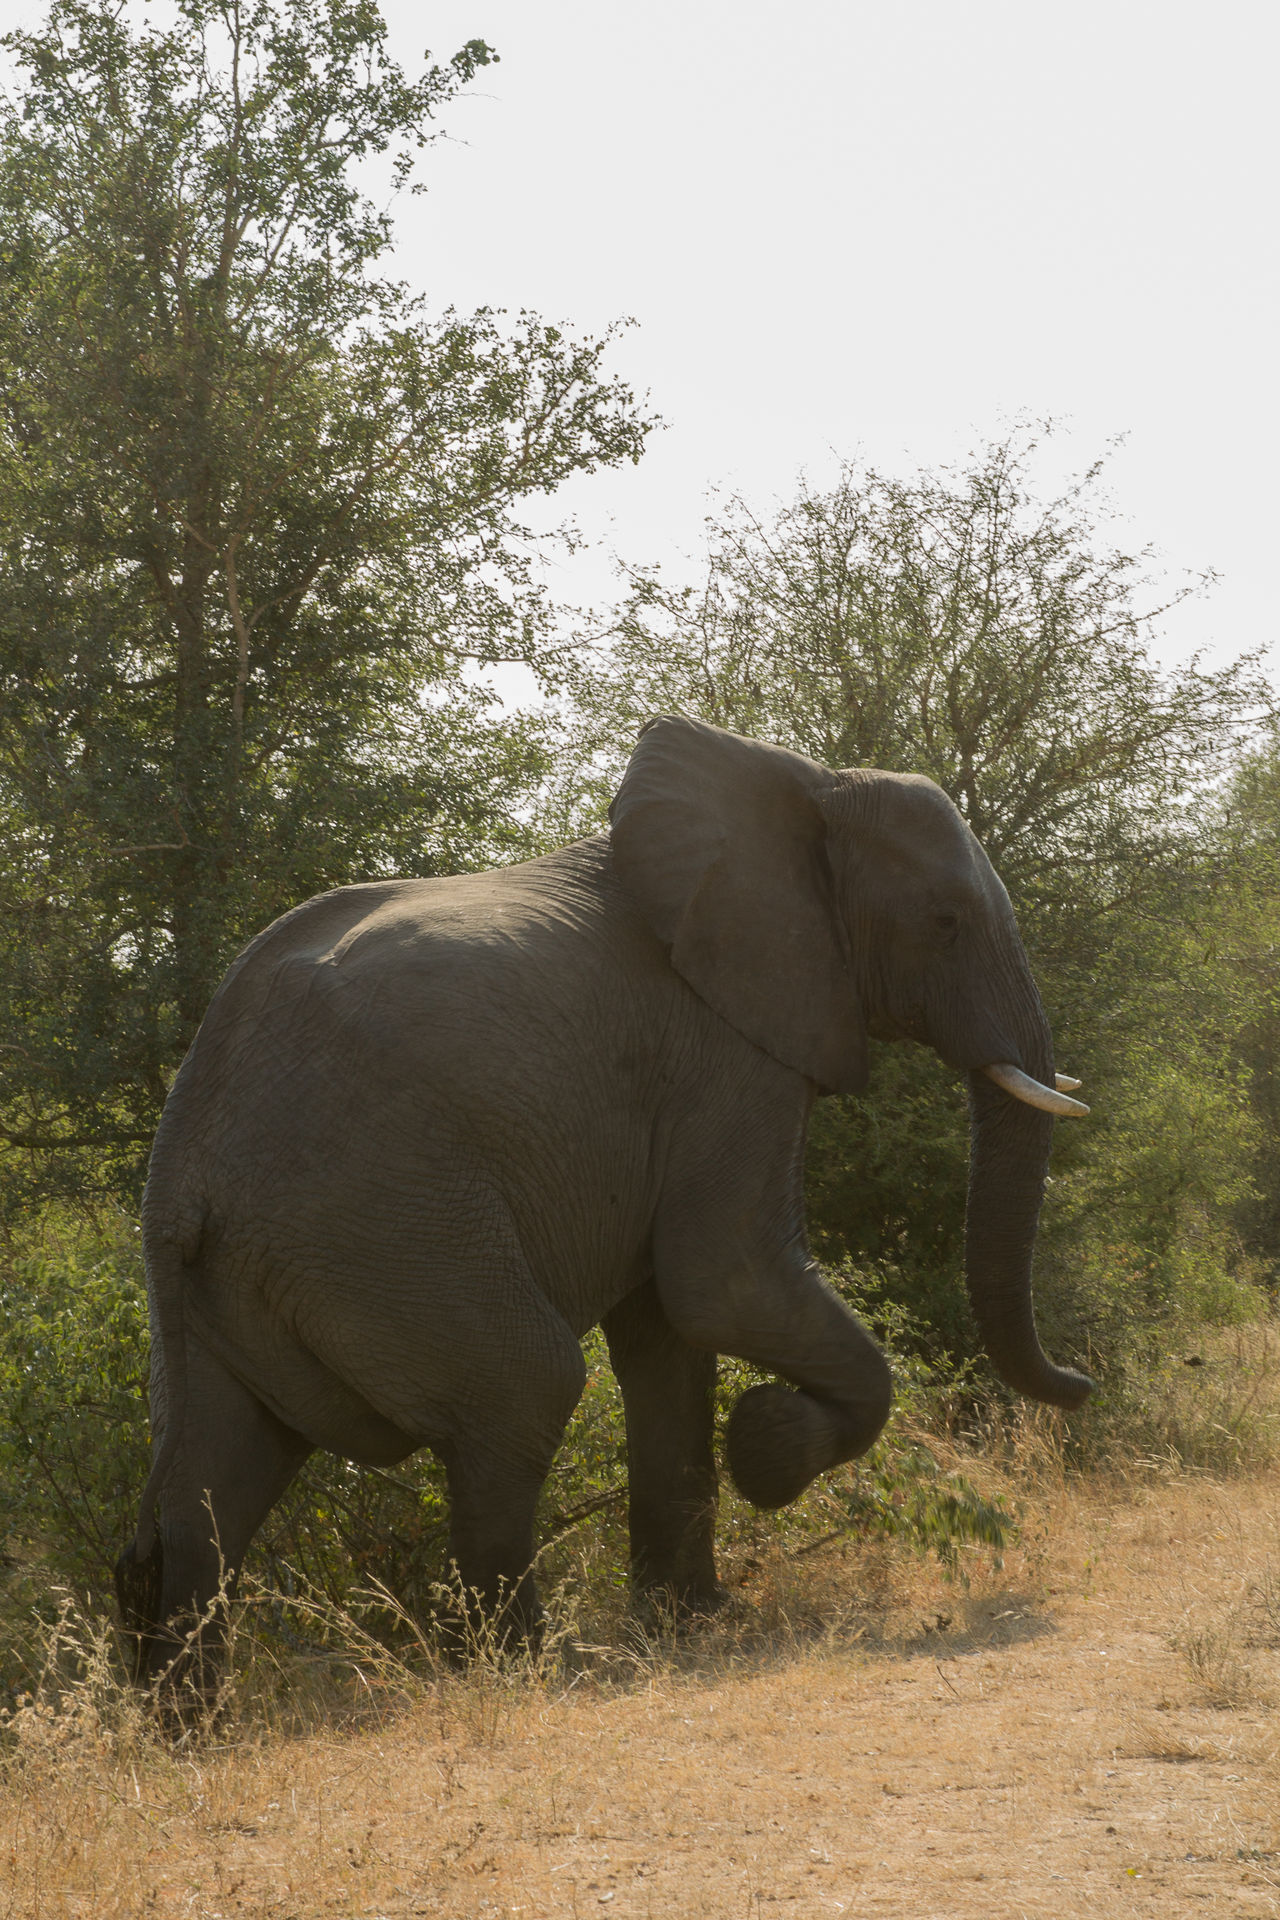 African Elephant Animal Animal Themes Animal Wildlife Animals In The Wild Day Elephant Full Length Grass Mammal Nature No People One Animal Outdoors Tree Tusk